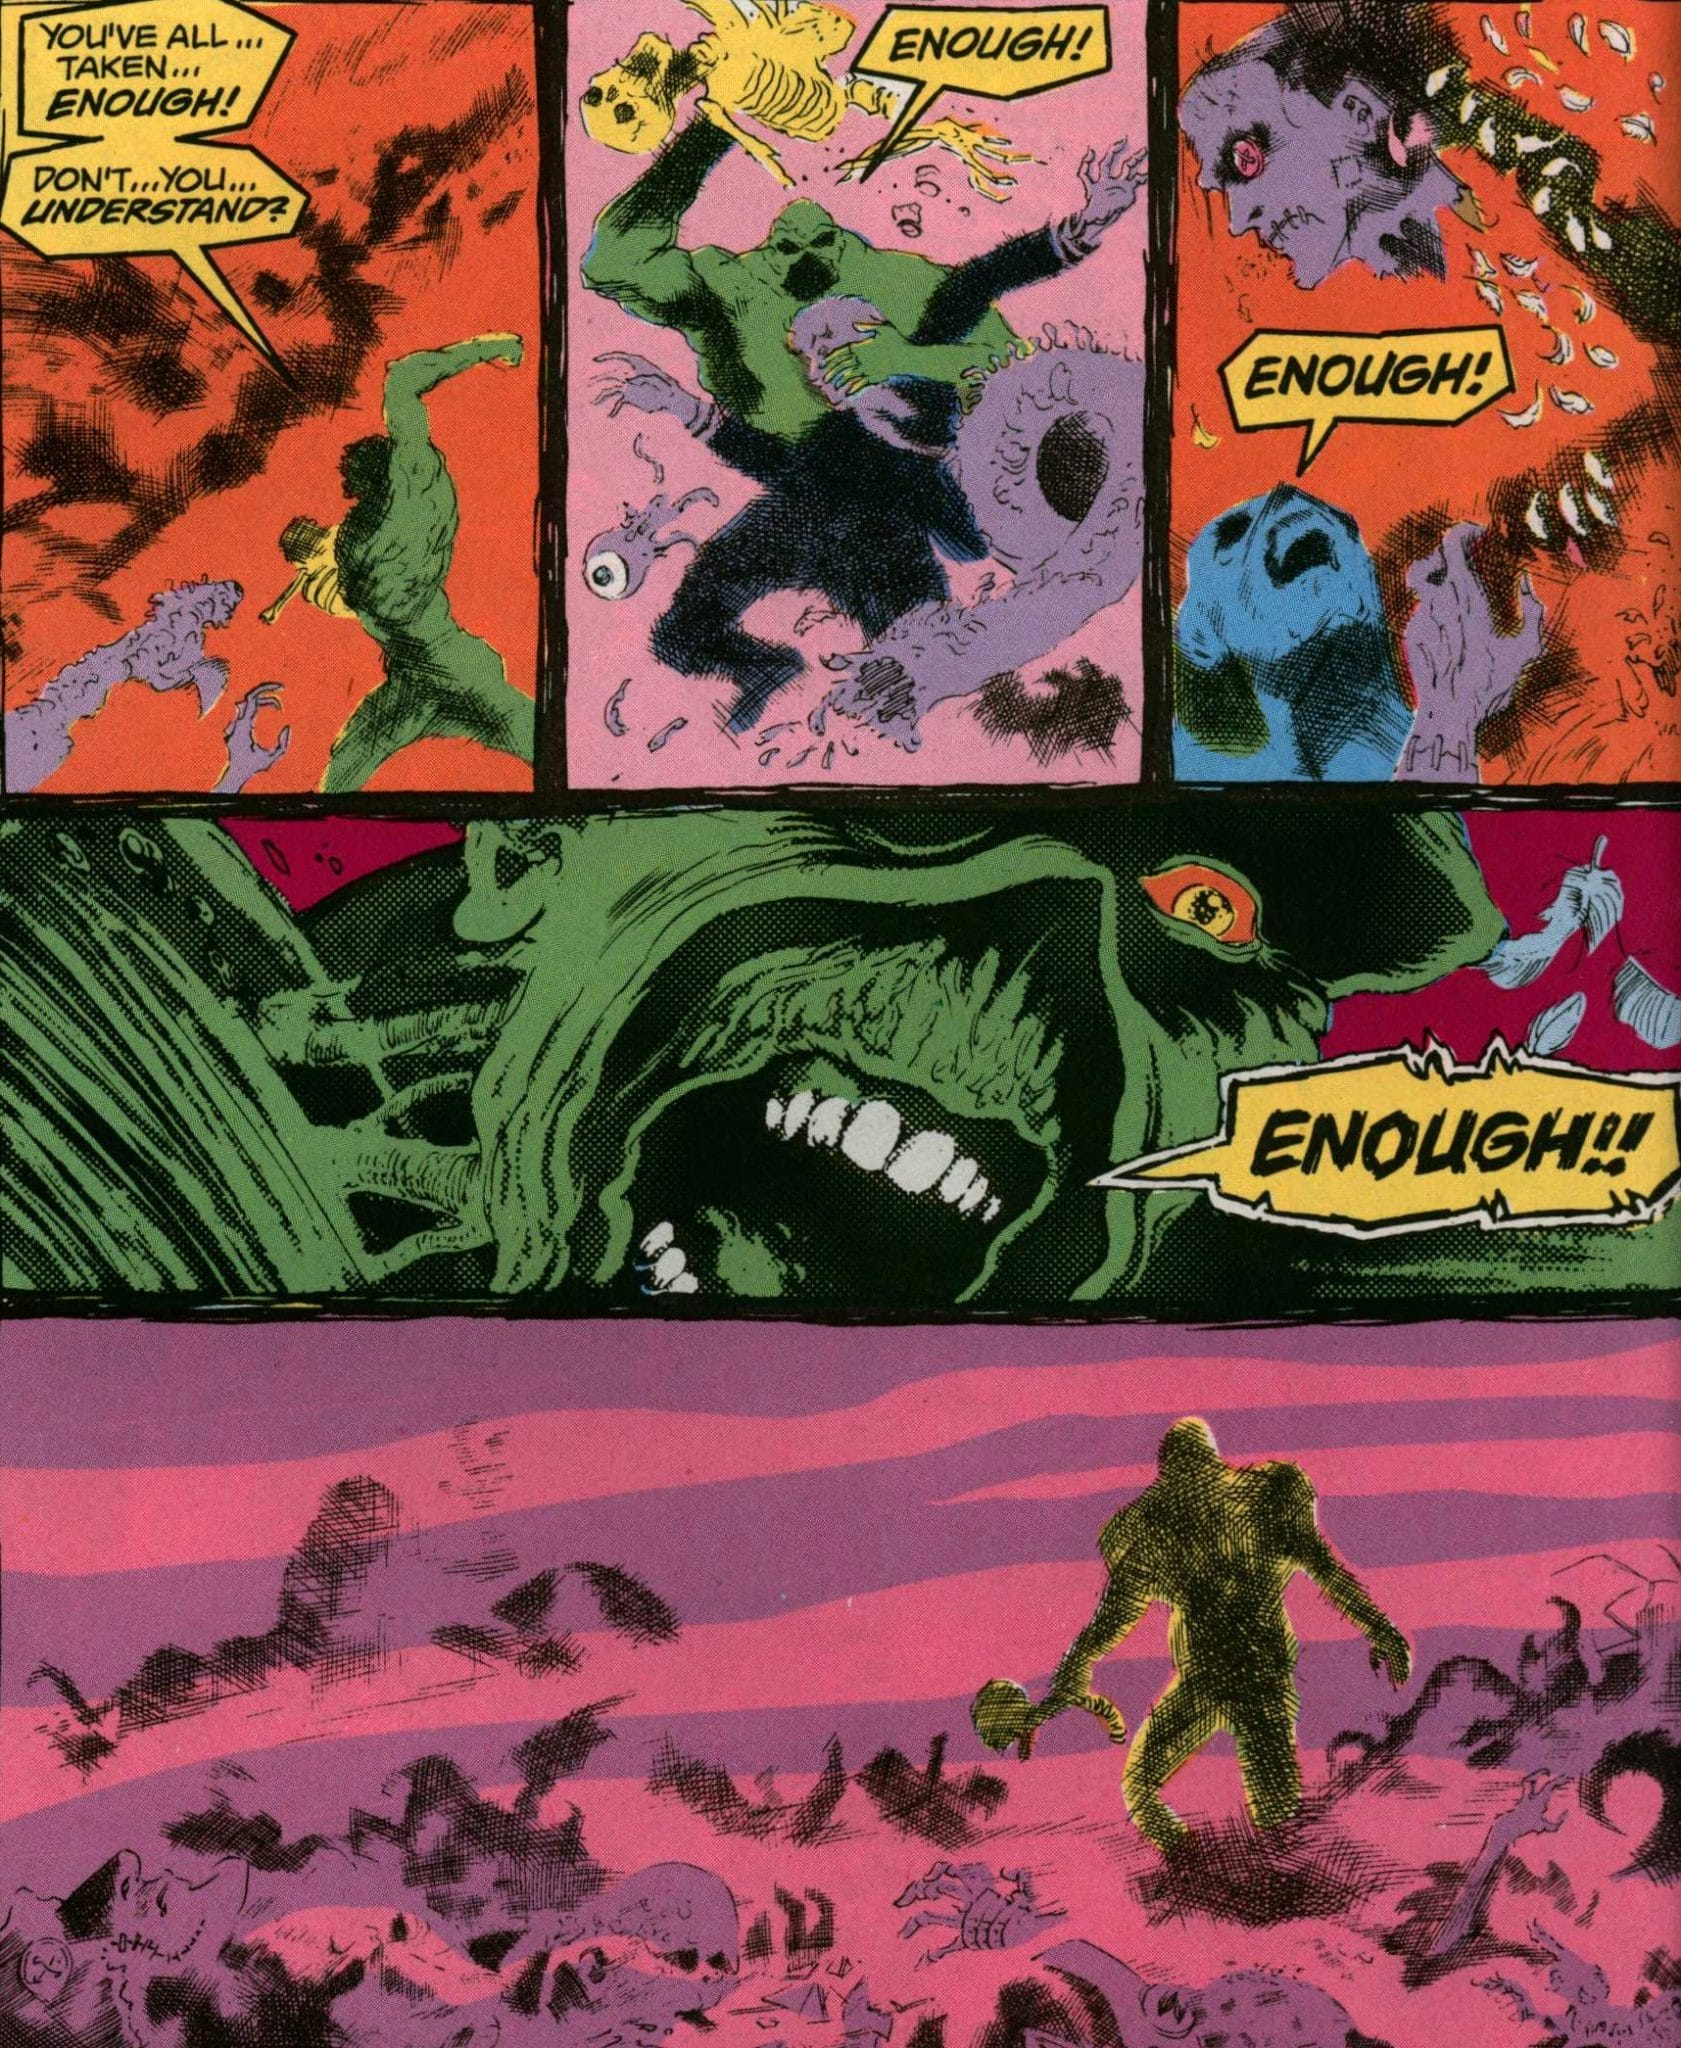 The Swamp Thing defends his humanity. Panels from The Saga of the Swamp Thing, February 1984. Writer: Alan Moore. Pencils: Steve Bissette. Inker: John Totleben. Colorist: Len Wein.